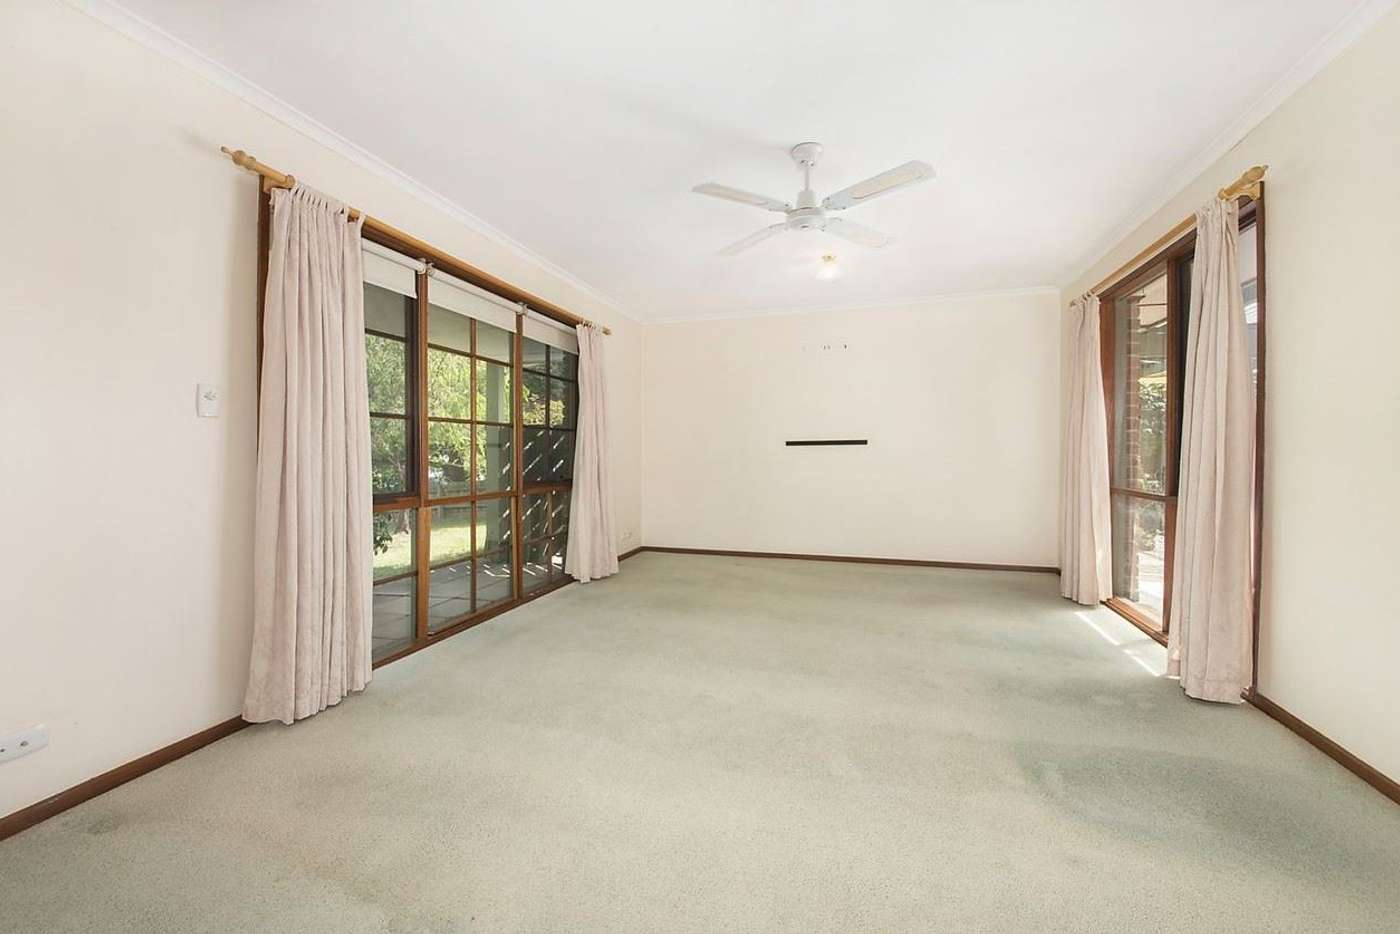 Seventh view of Homely house listing, 42 Carramar Street, Mornington VIC 3931